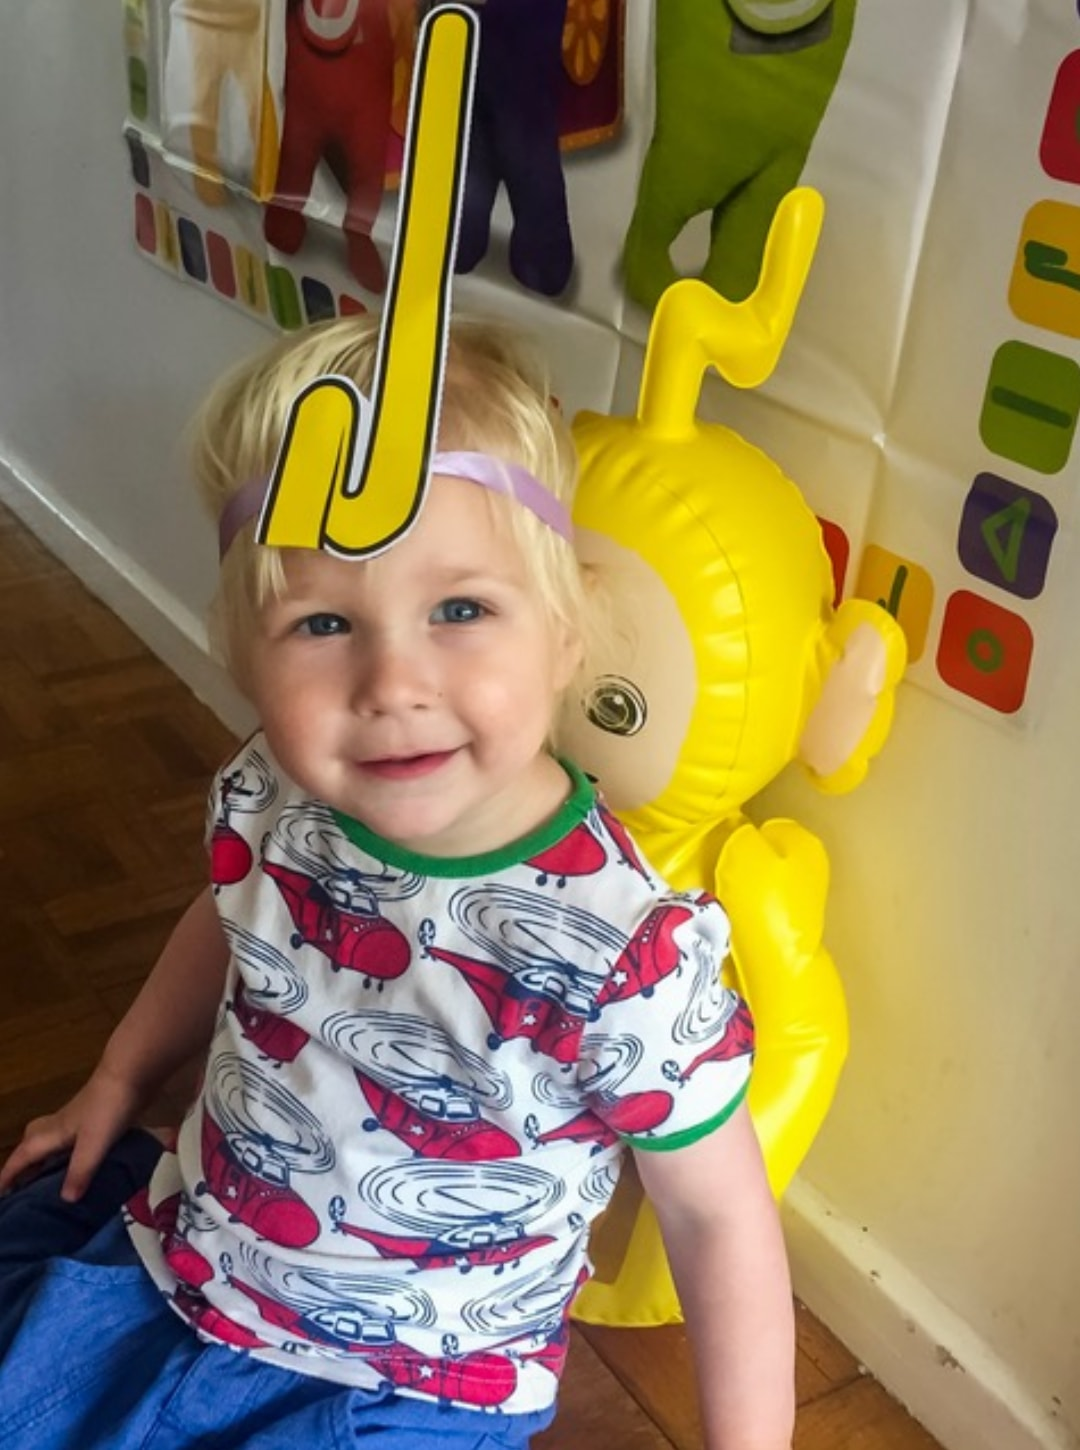 A photograph of a little boy sitting in front of the Teletubbies Custard Chaos Game and in front of the Inflatable Laa-Laa Bopper and wearing a Laa-Laa Tubby Antennae which is part of the Teletubbies Playdate Pack - Hosting A Teletubbies Playdate #TubbyPlaydate - Mrs H's favourite things